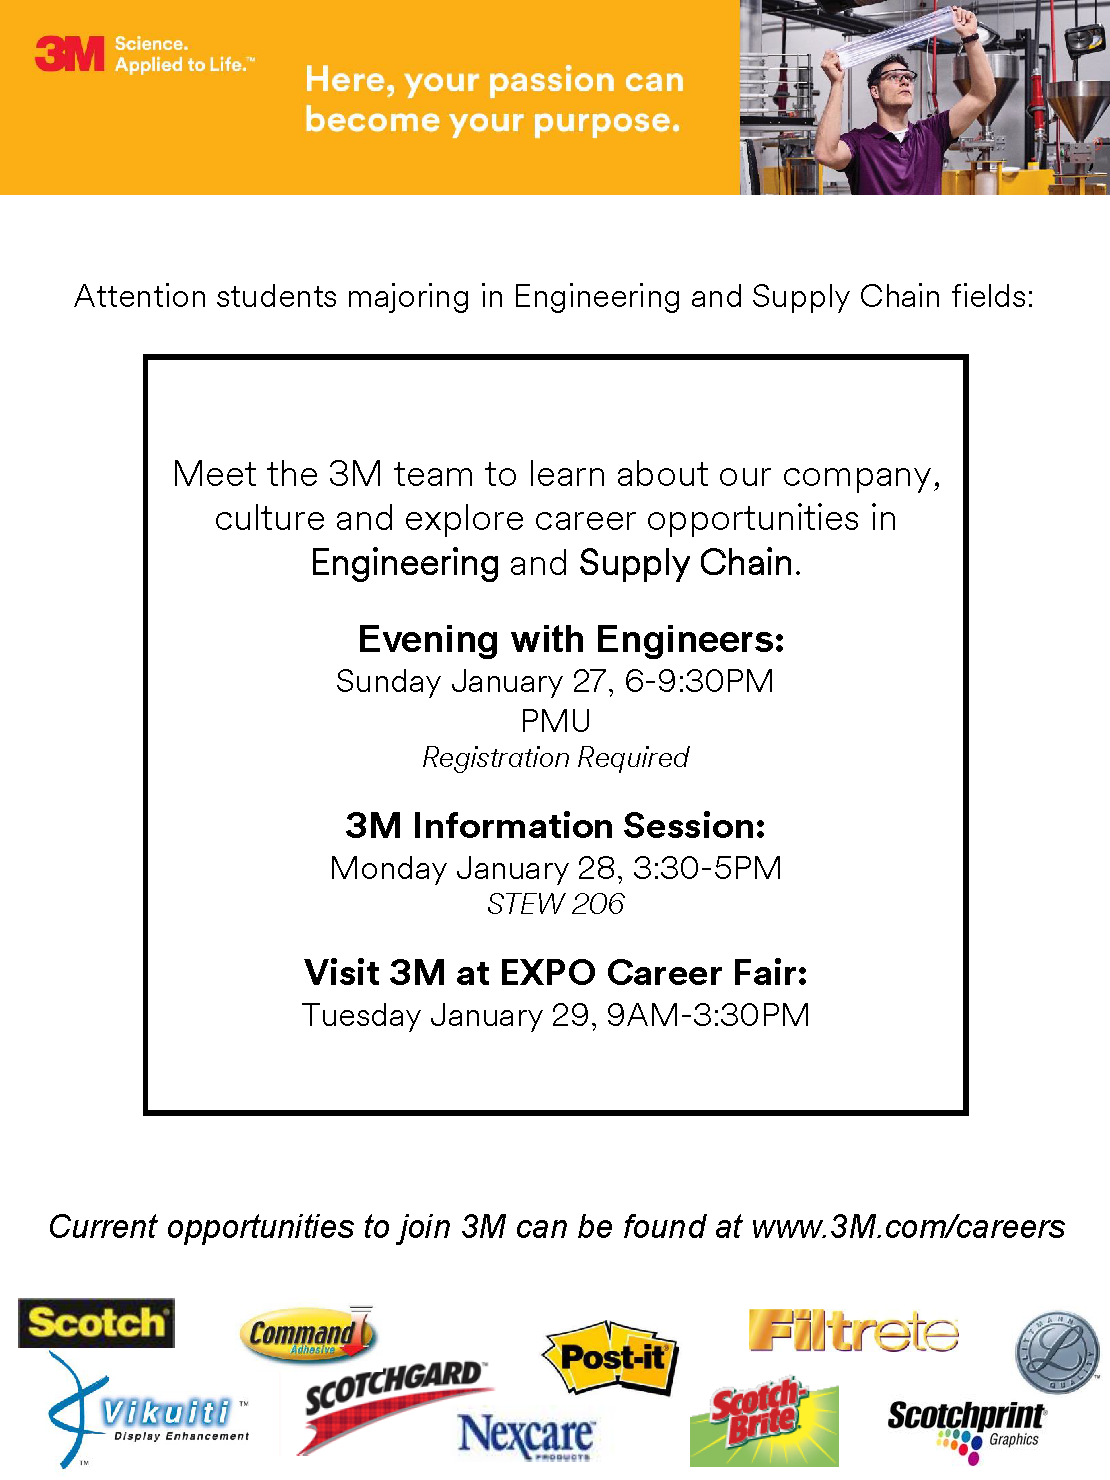 3M on campus 1/27-1/29 | Purdue IE Undergrad News and Notes